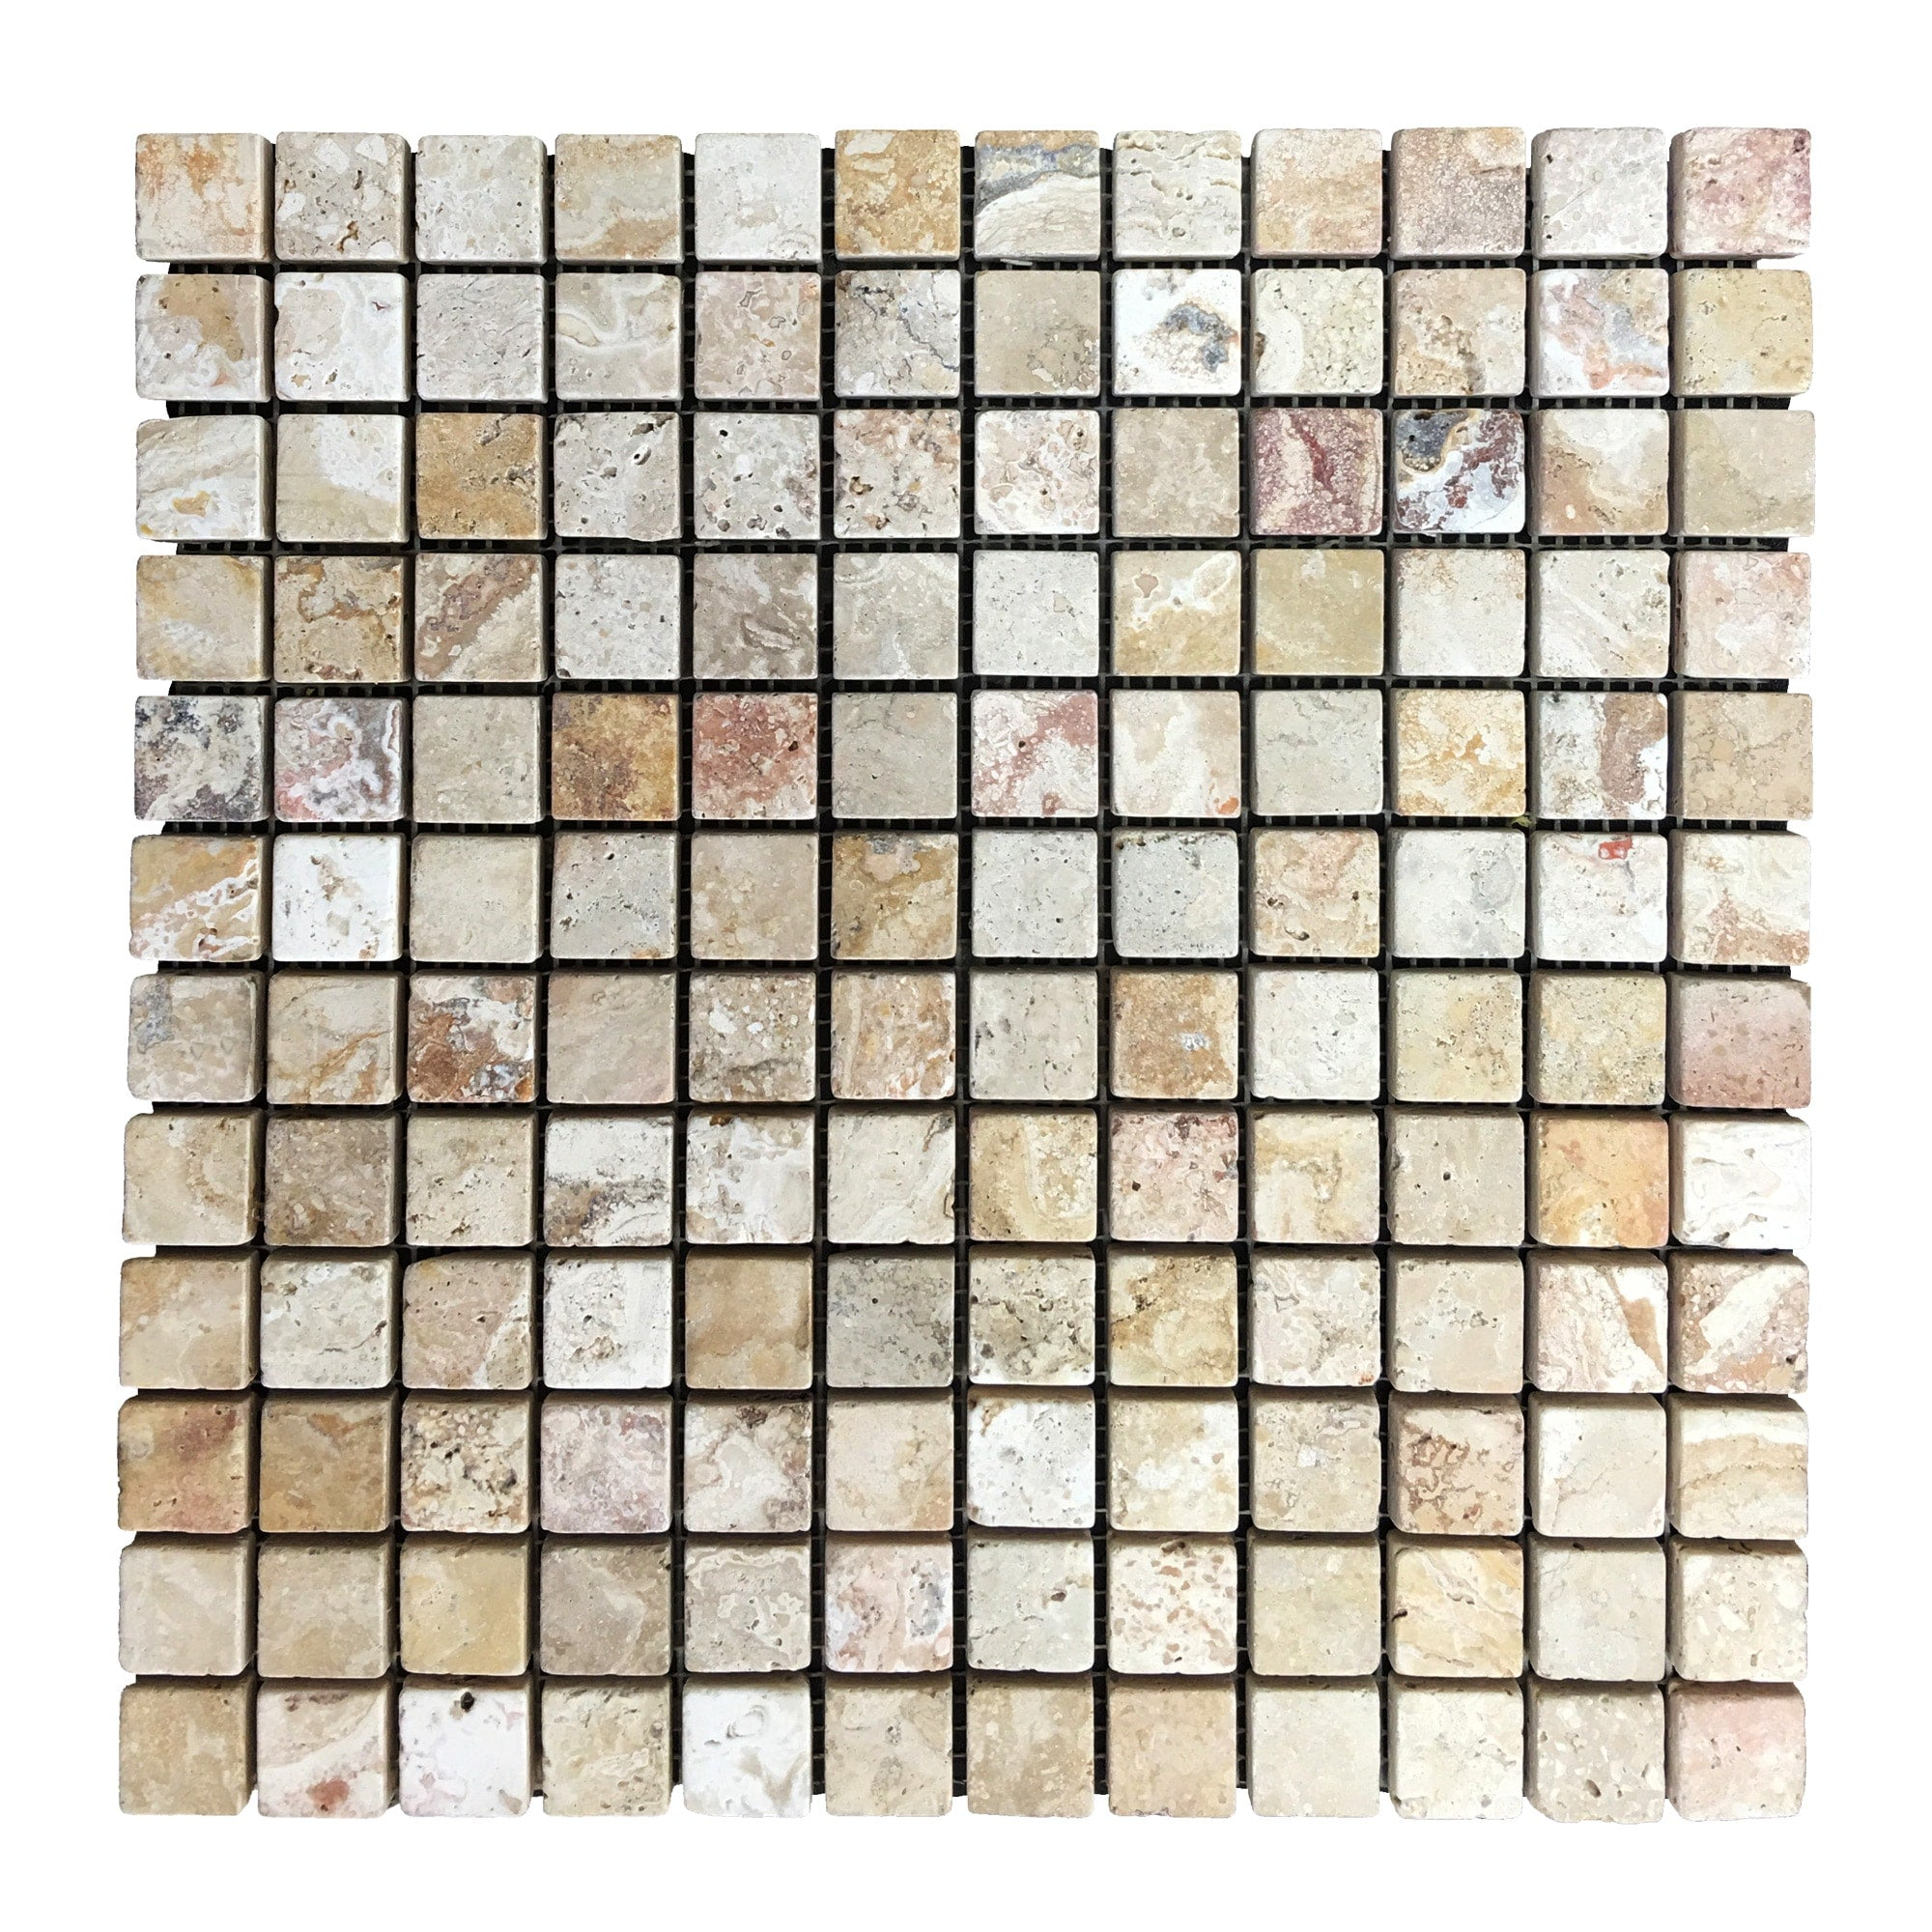 Travertine Leonardo Mosaic 1 x 1 Tiles